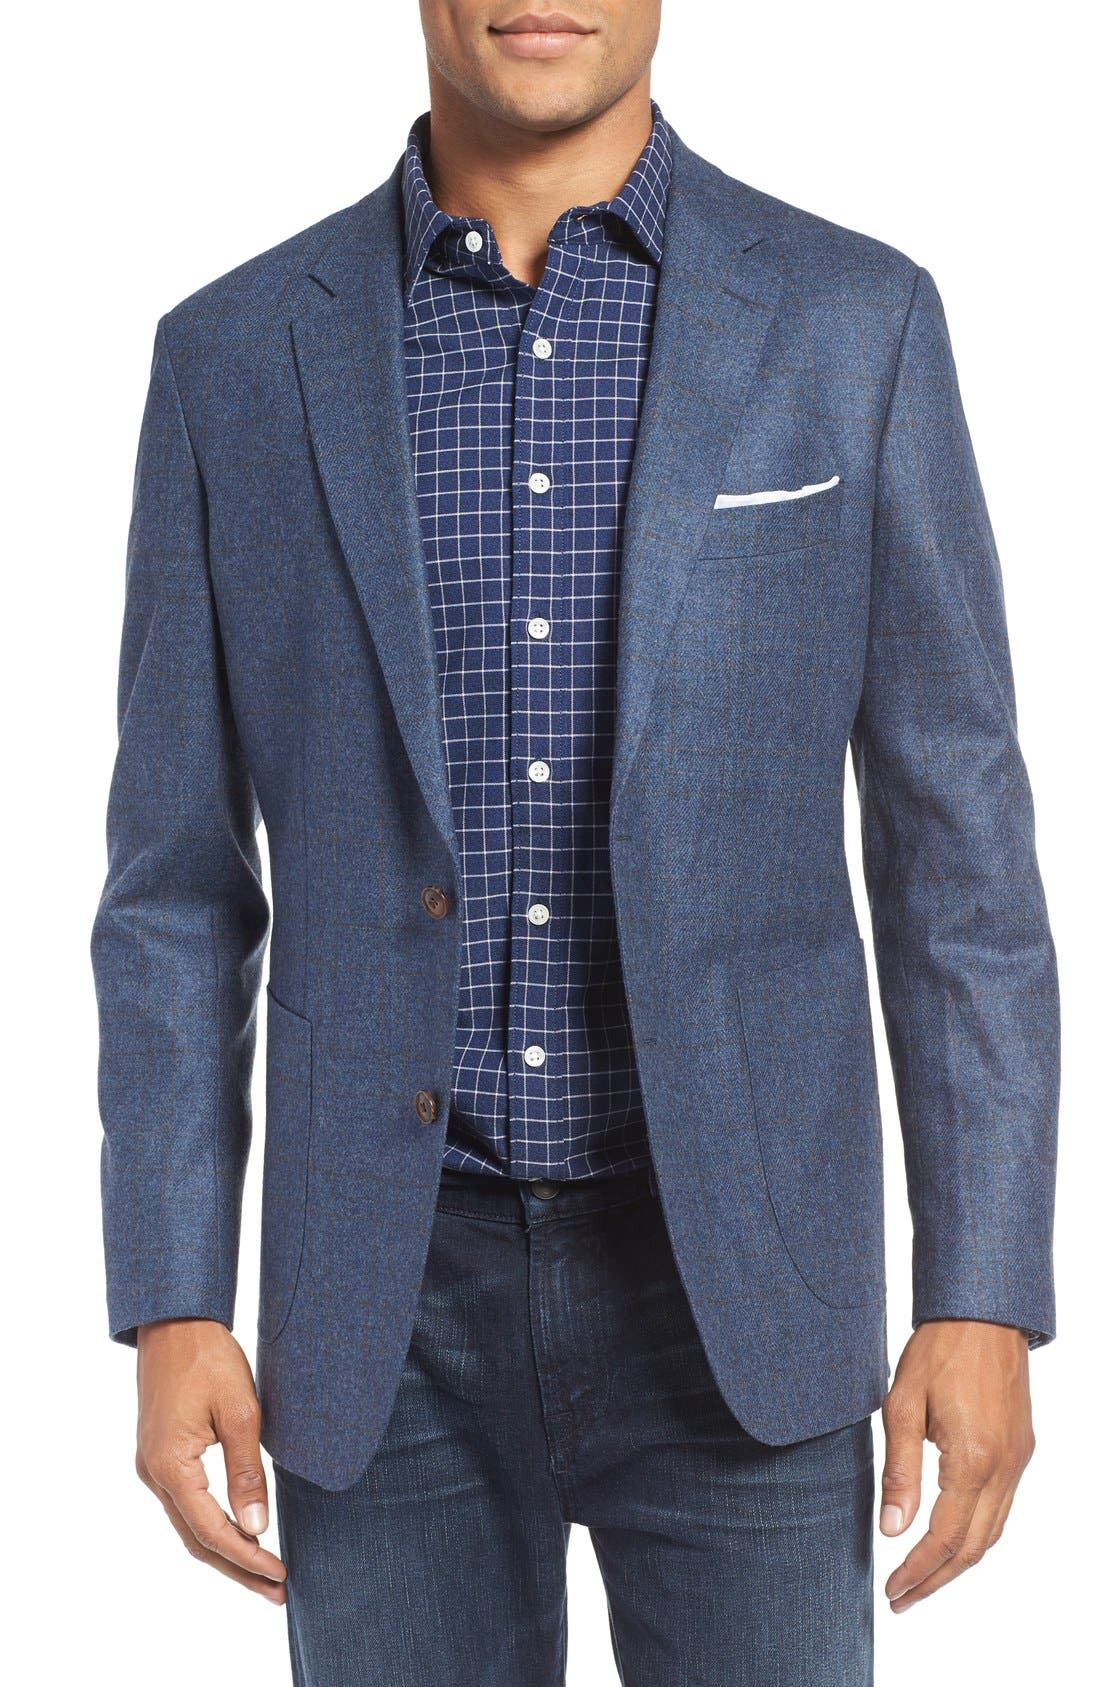 Alternate Image 1 Selected - Rodd & Gunn 'Clareinch' Herringbone Plaid Sport Coat